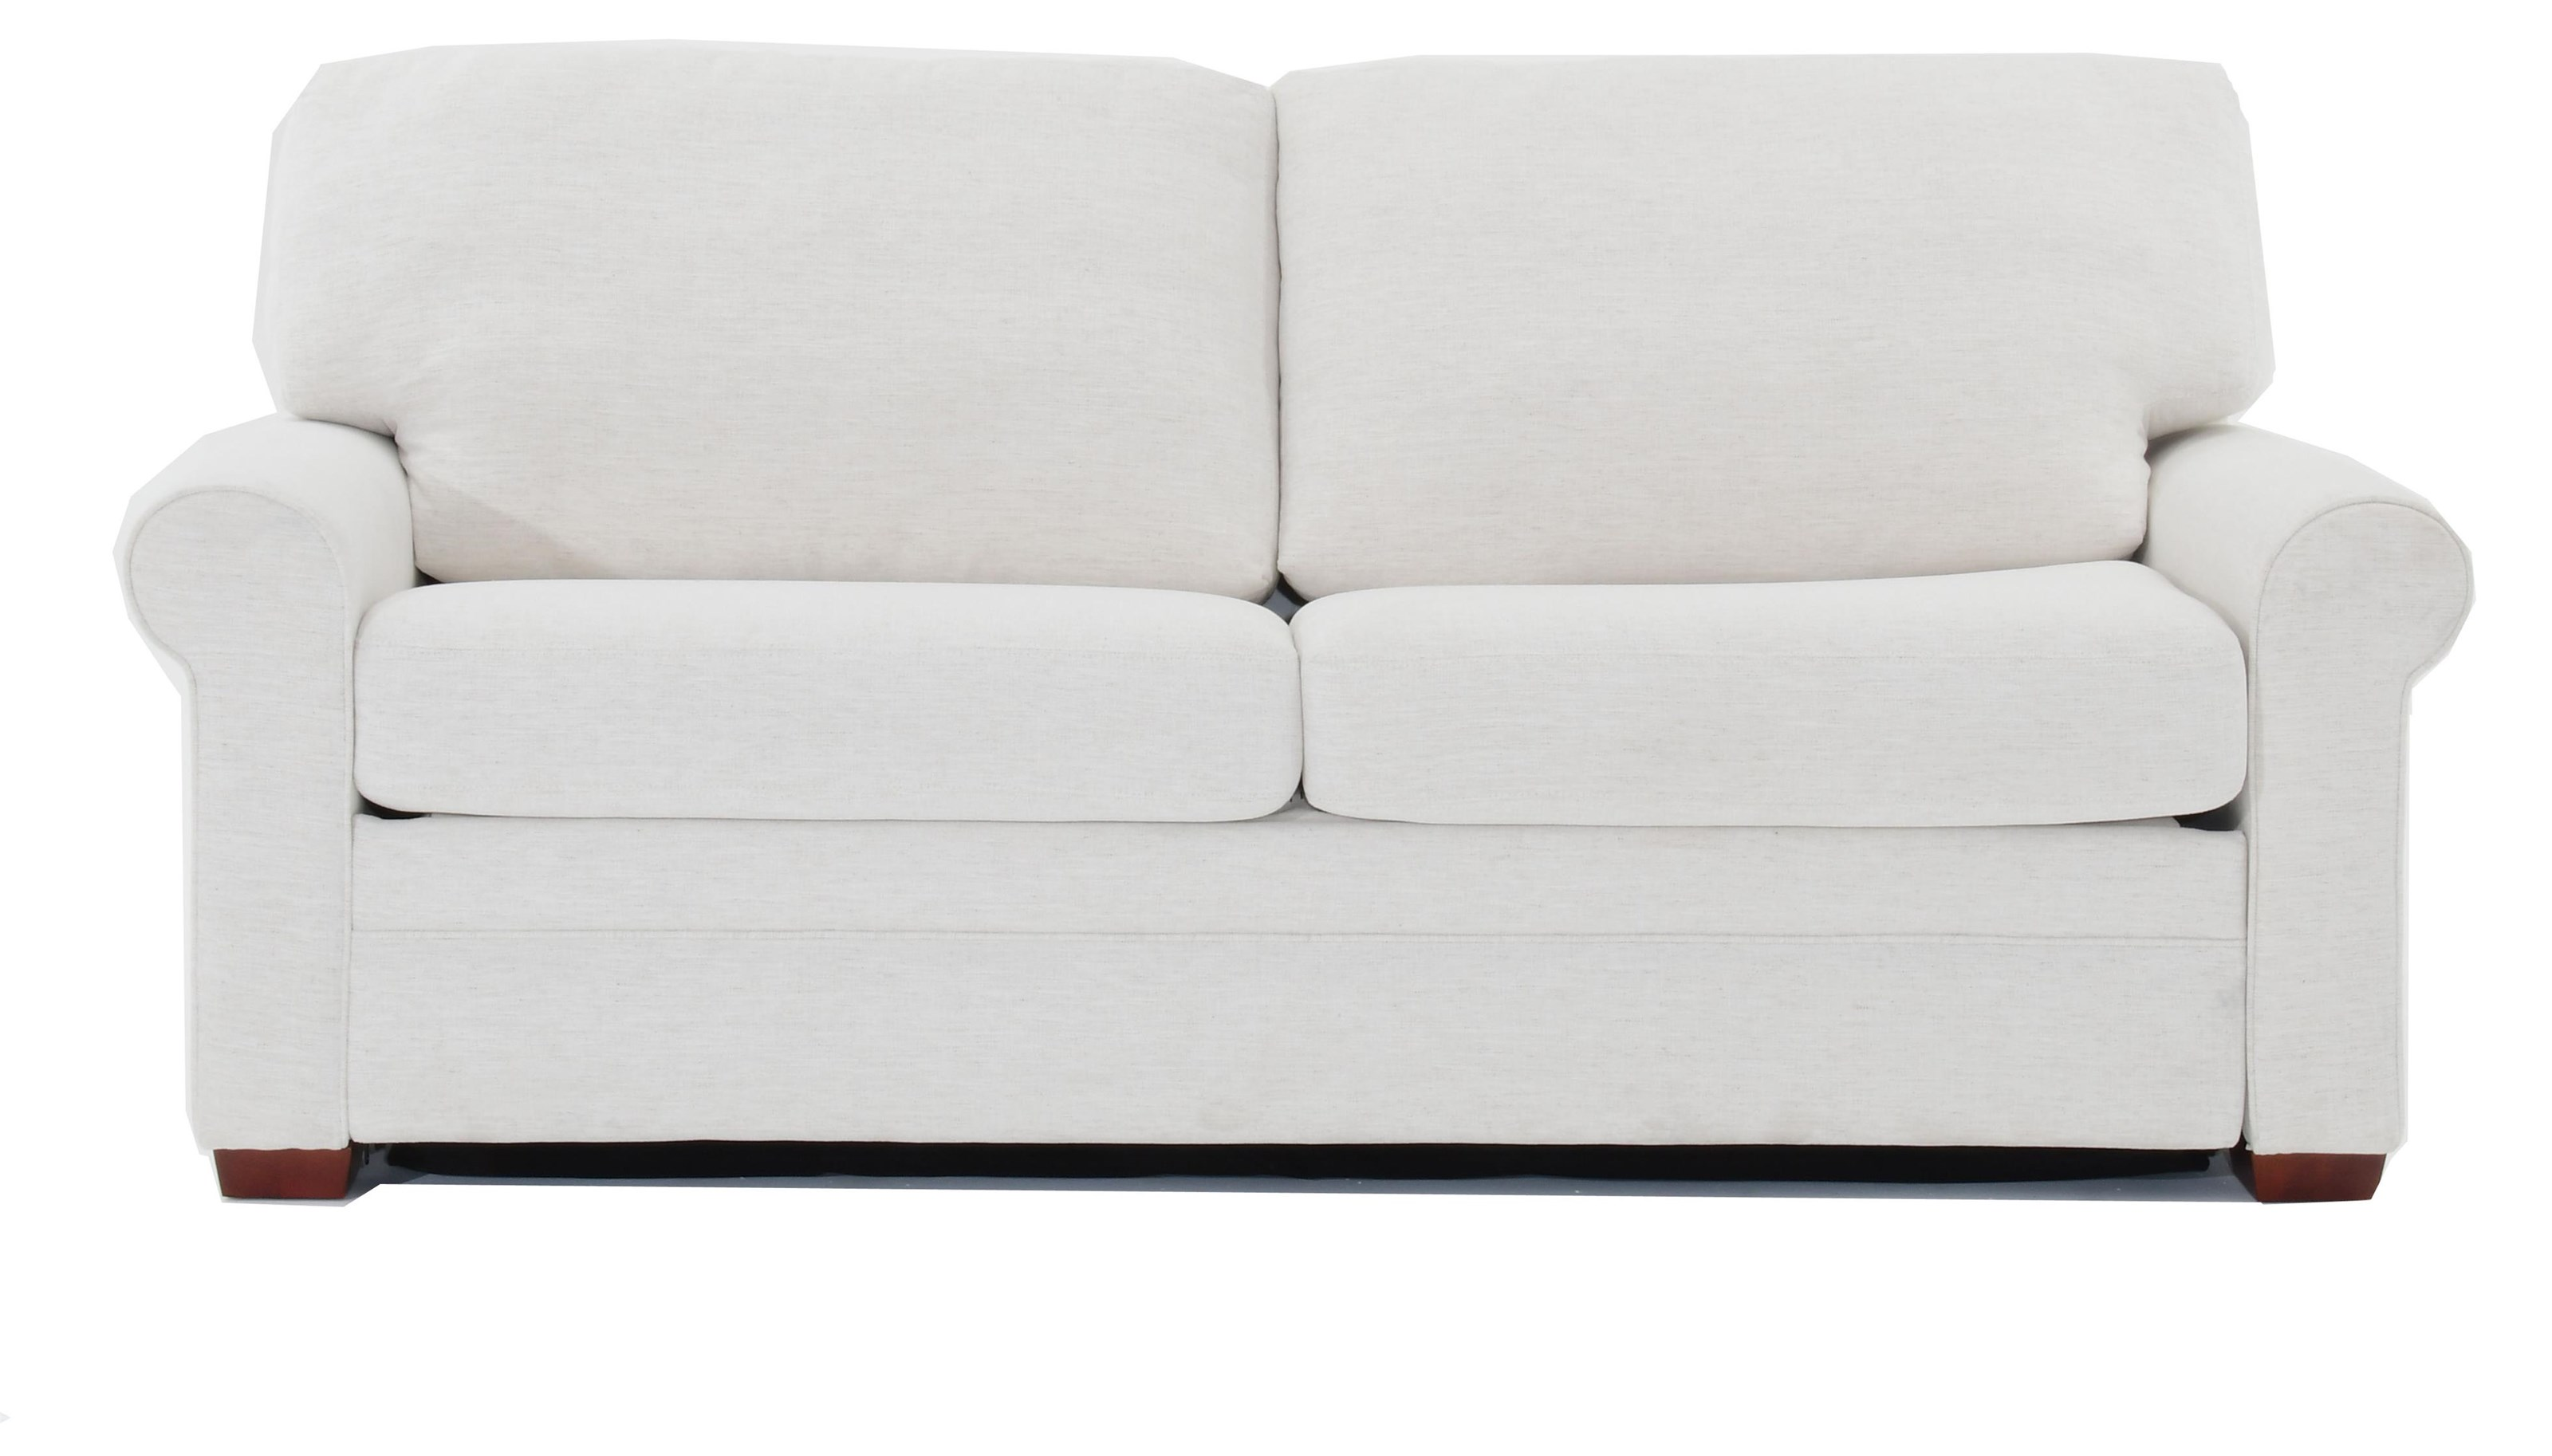 Gaines Sleeper Sofa by American Leather at Baer's Furniture